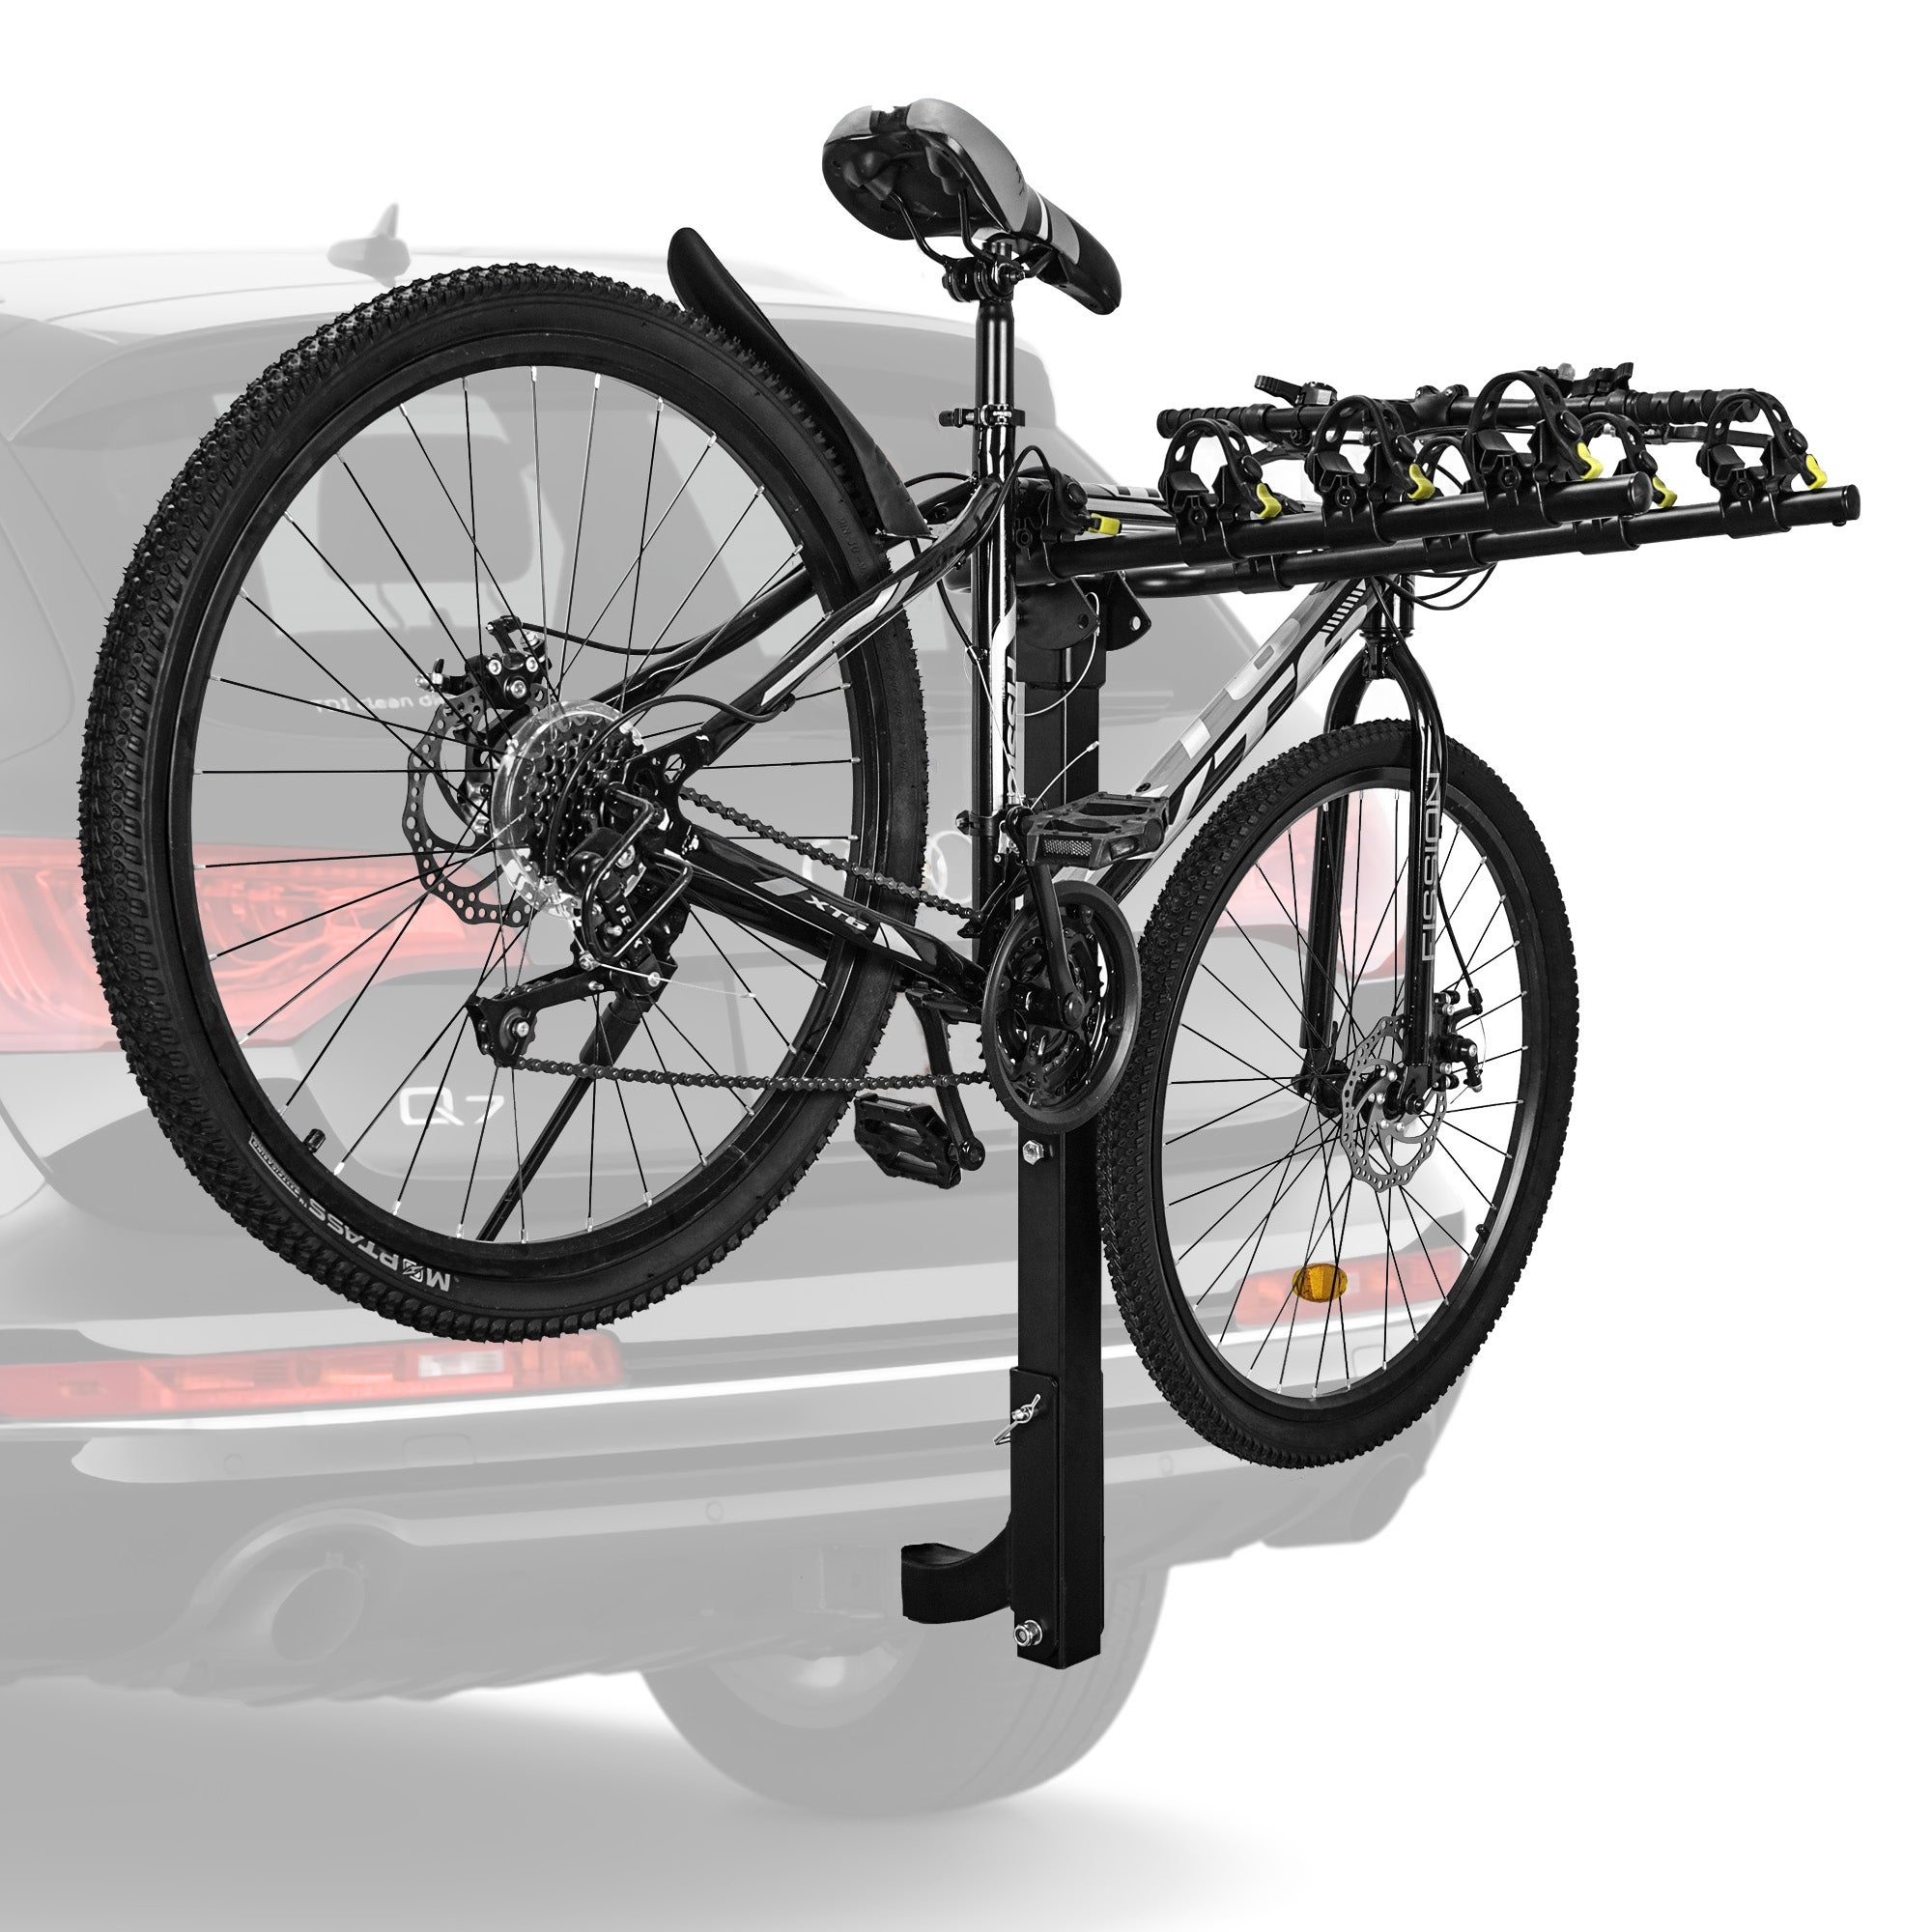 Bike Carrier Rack >> Avenn Premium 4 Bike Carrier Rack Hitch Mount Swing Down Bicycle Rack With 2 Inch Receiver